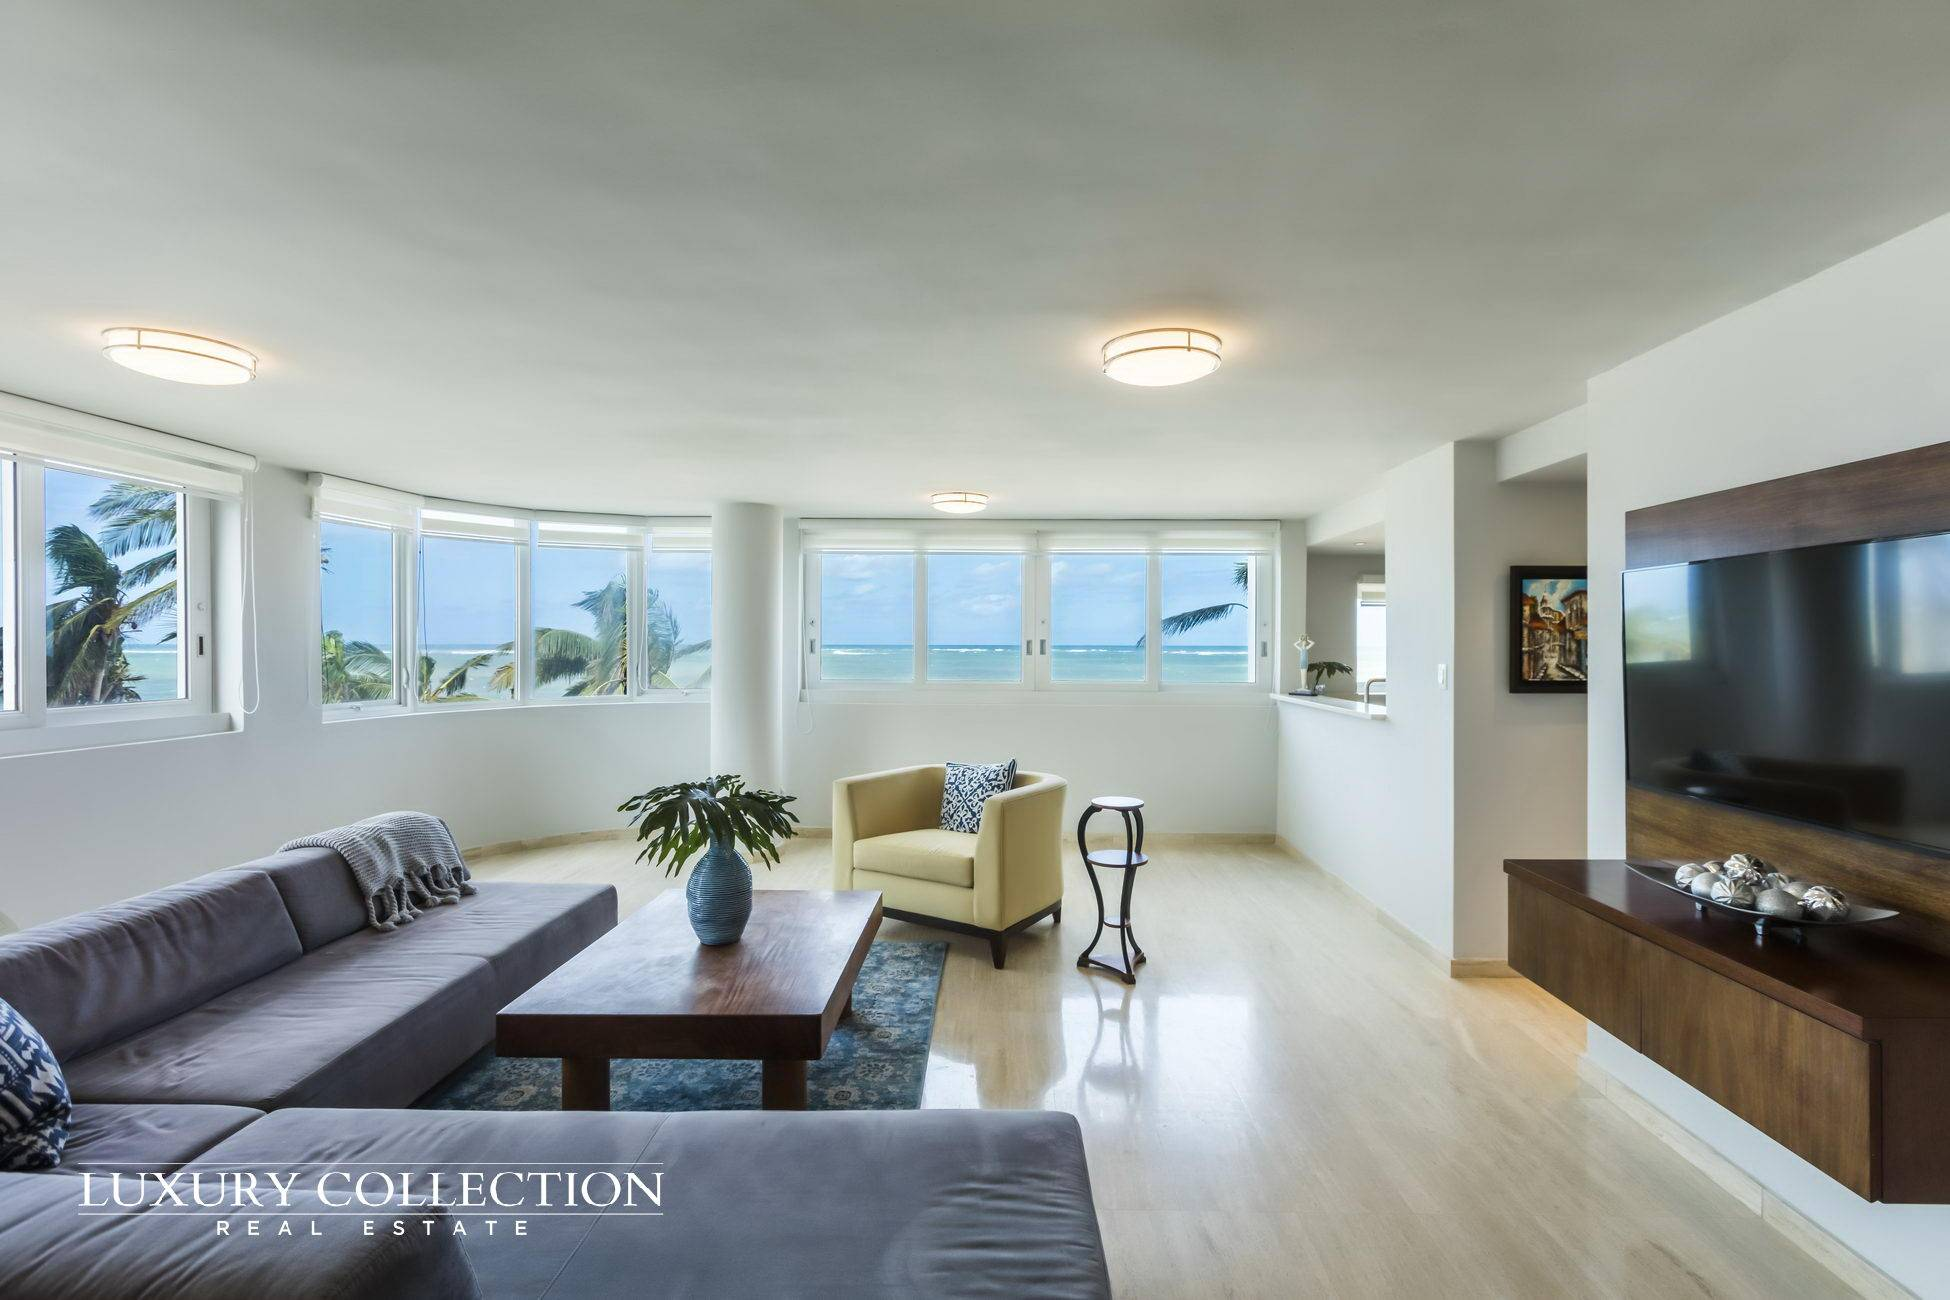 Beachfront Apartment for Sale standing at the most residential and best beach area of Condado, Kings Court Playa is an beachfront building. Luxury Collection Real Estate